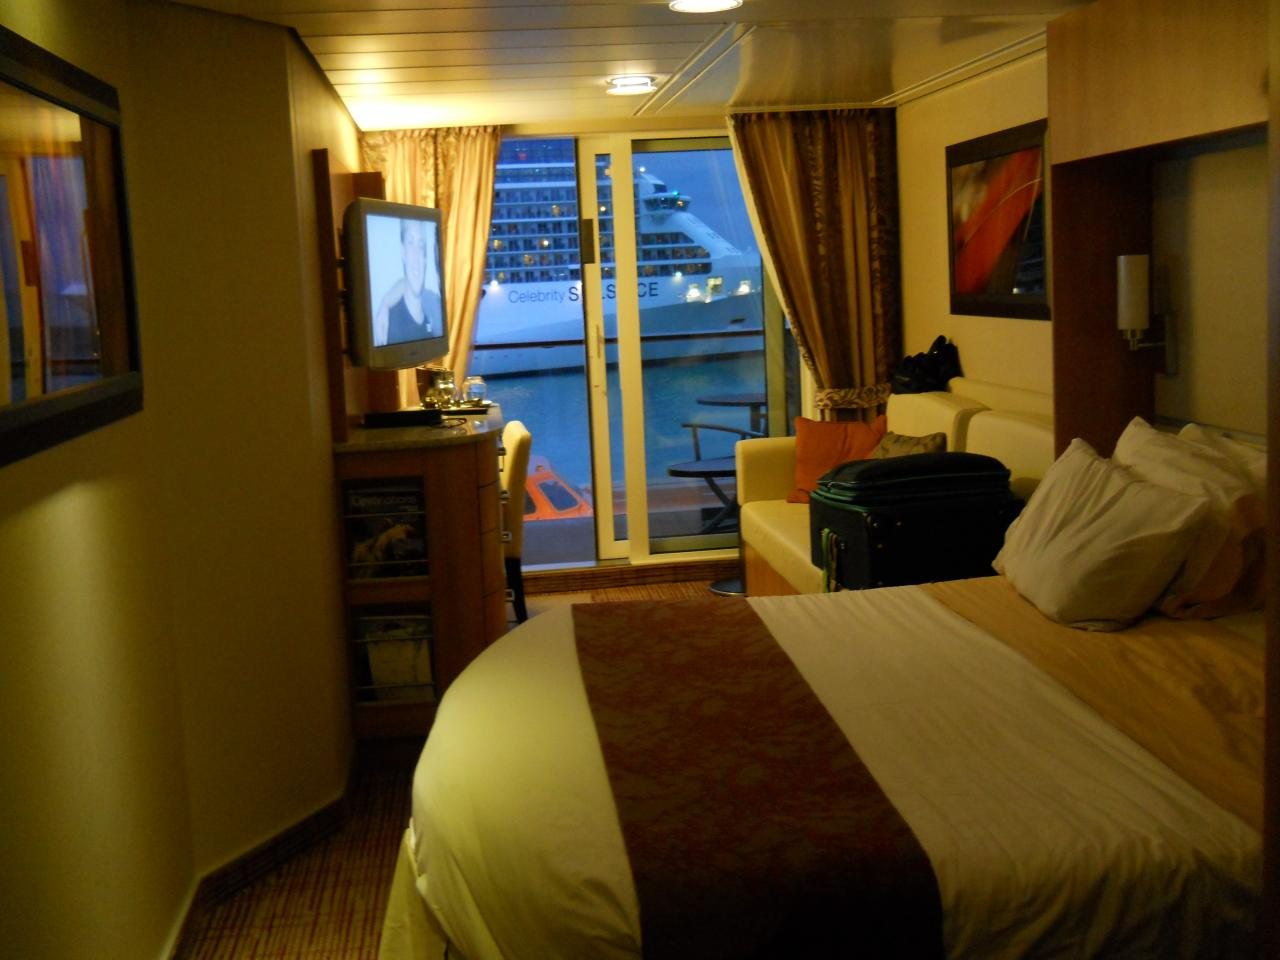 Celebrity Equinox Cruise Review for Cabin 6257